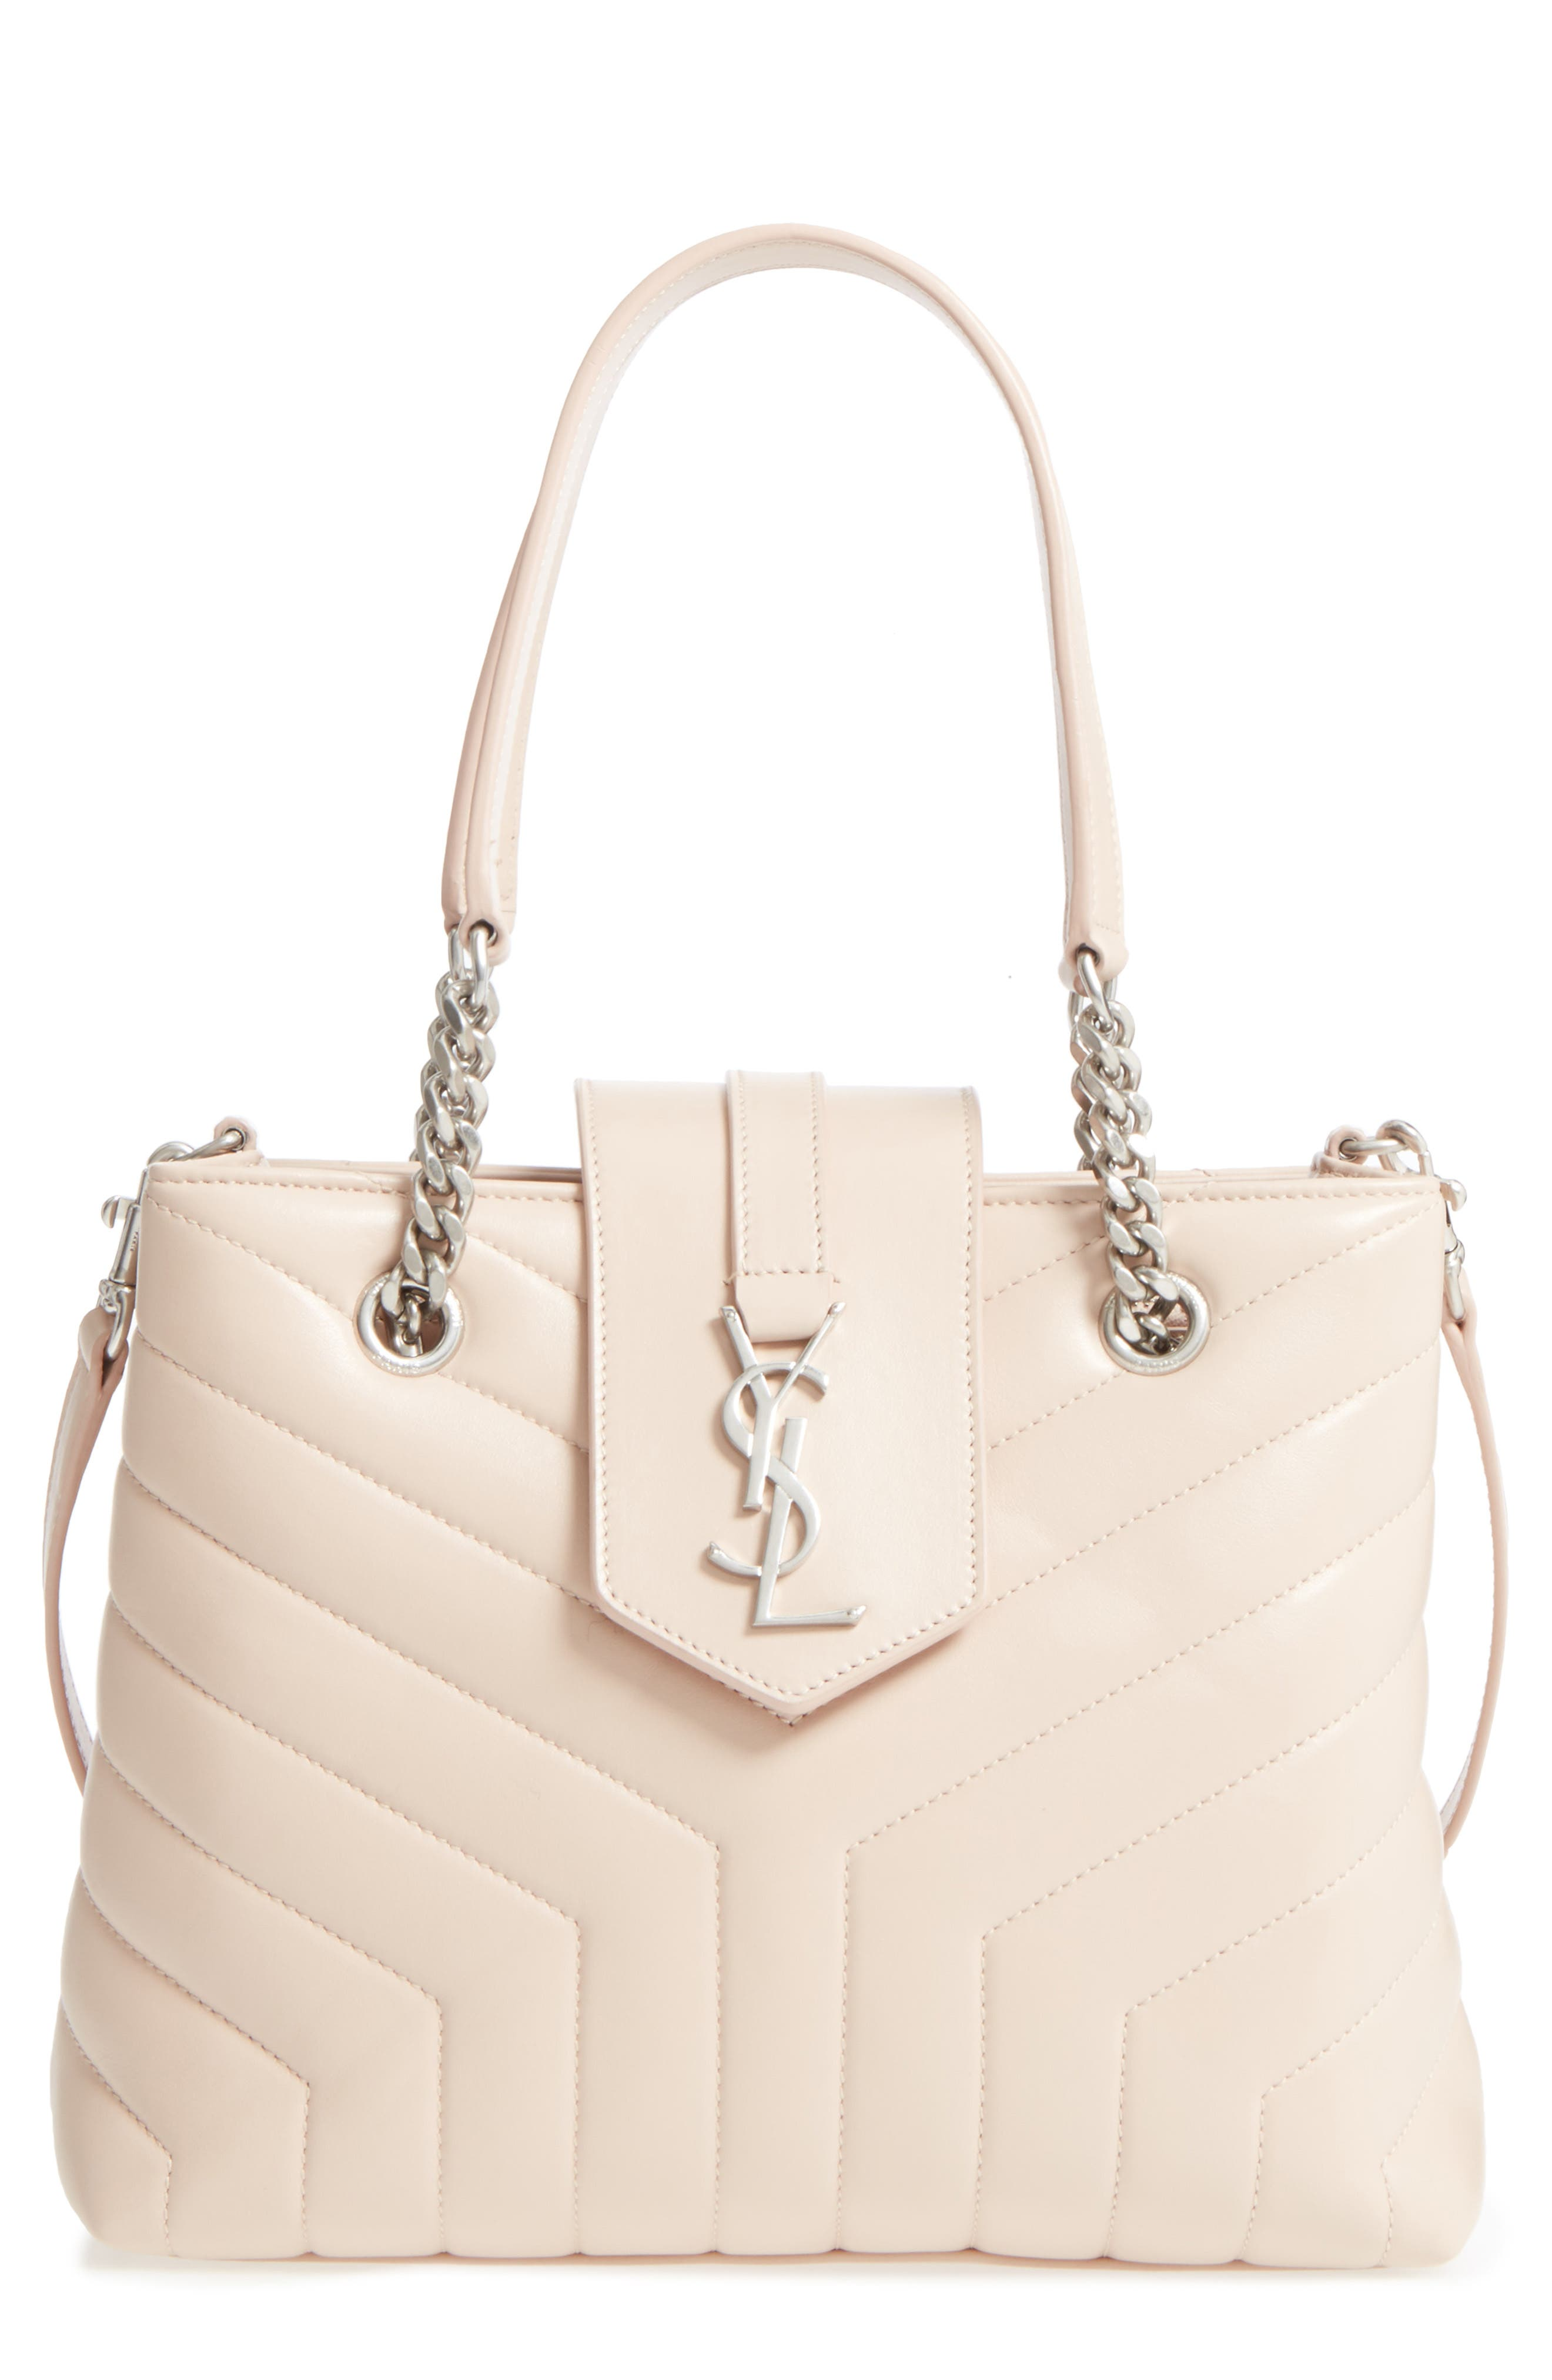 Main Image - Saint Laurent Small Loulou Matelassé Leather Shopper